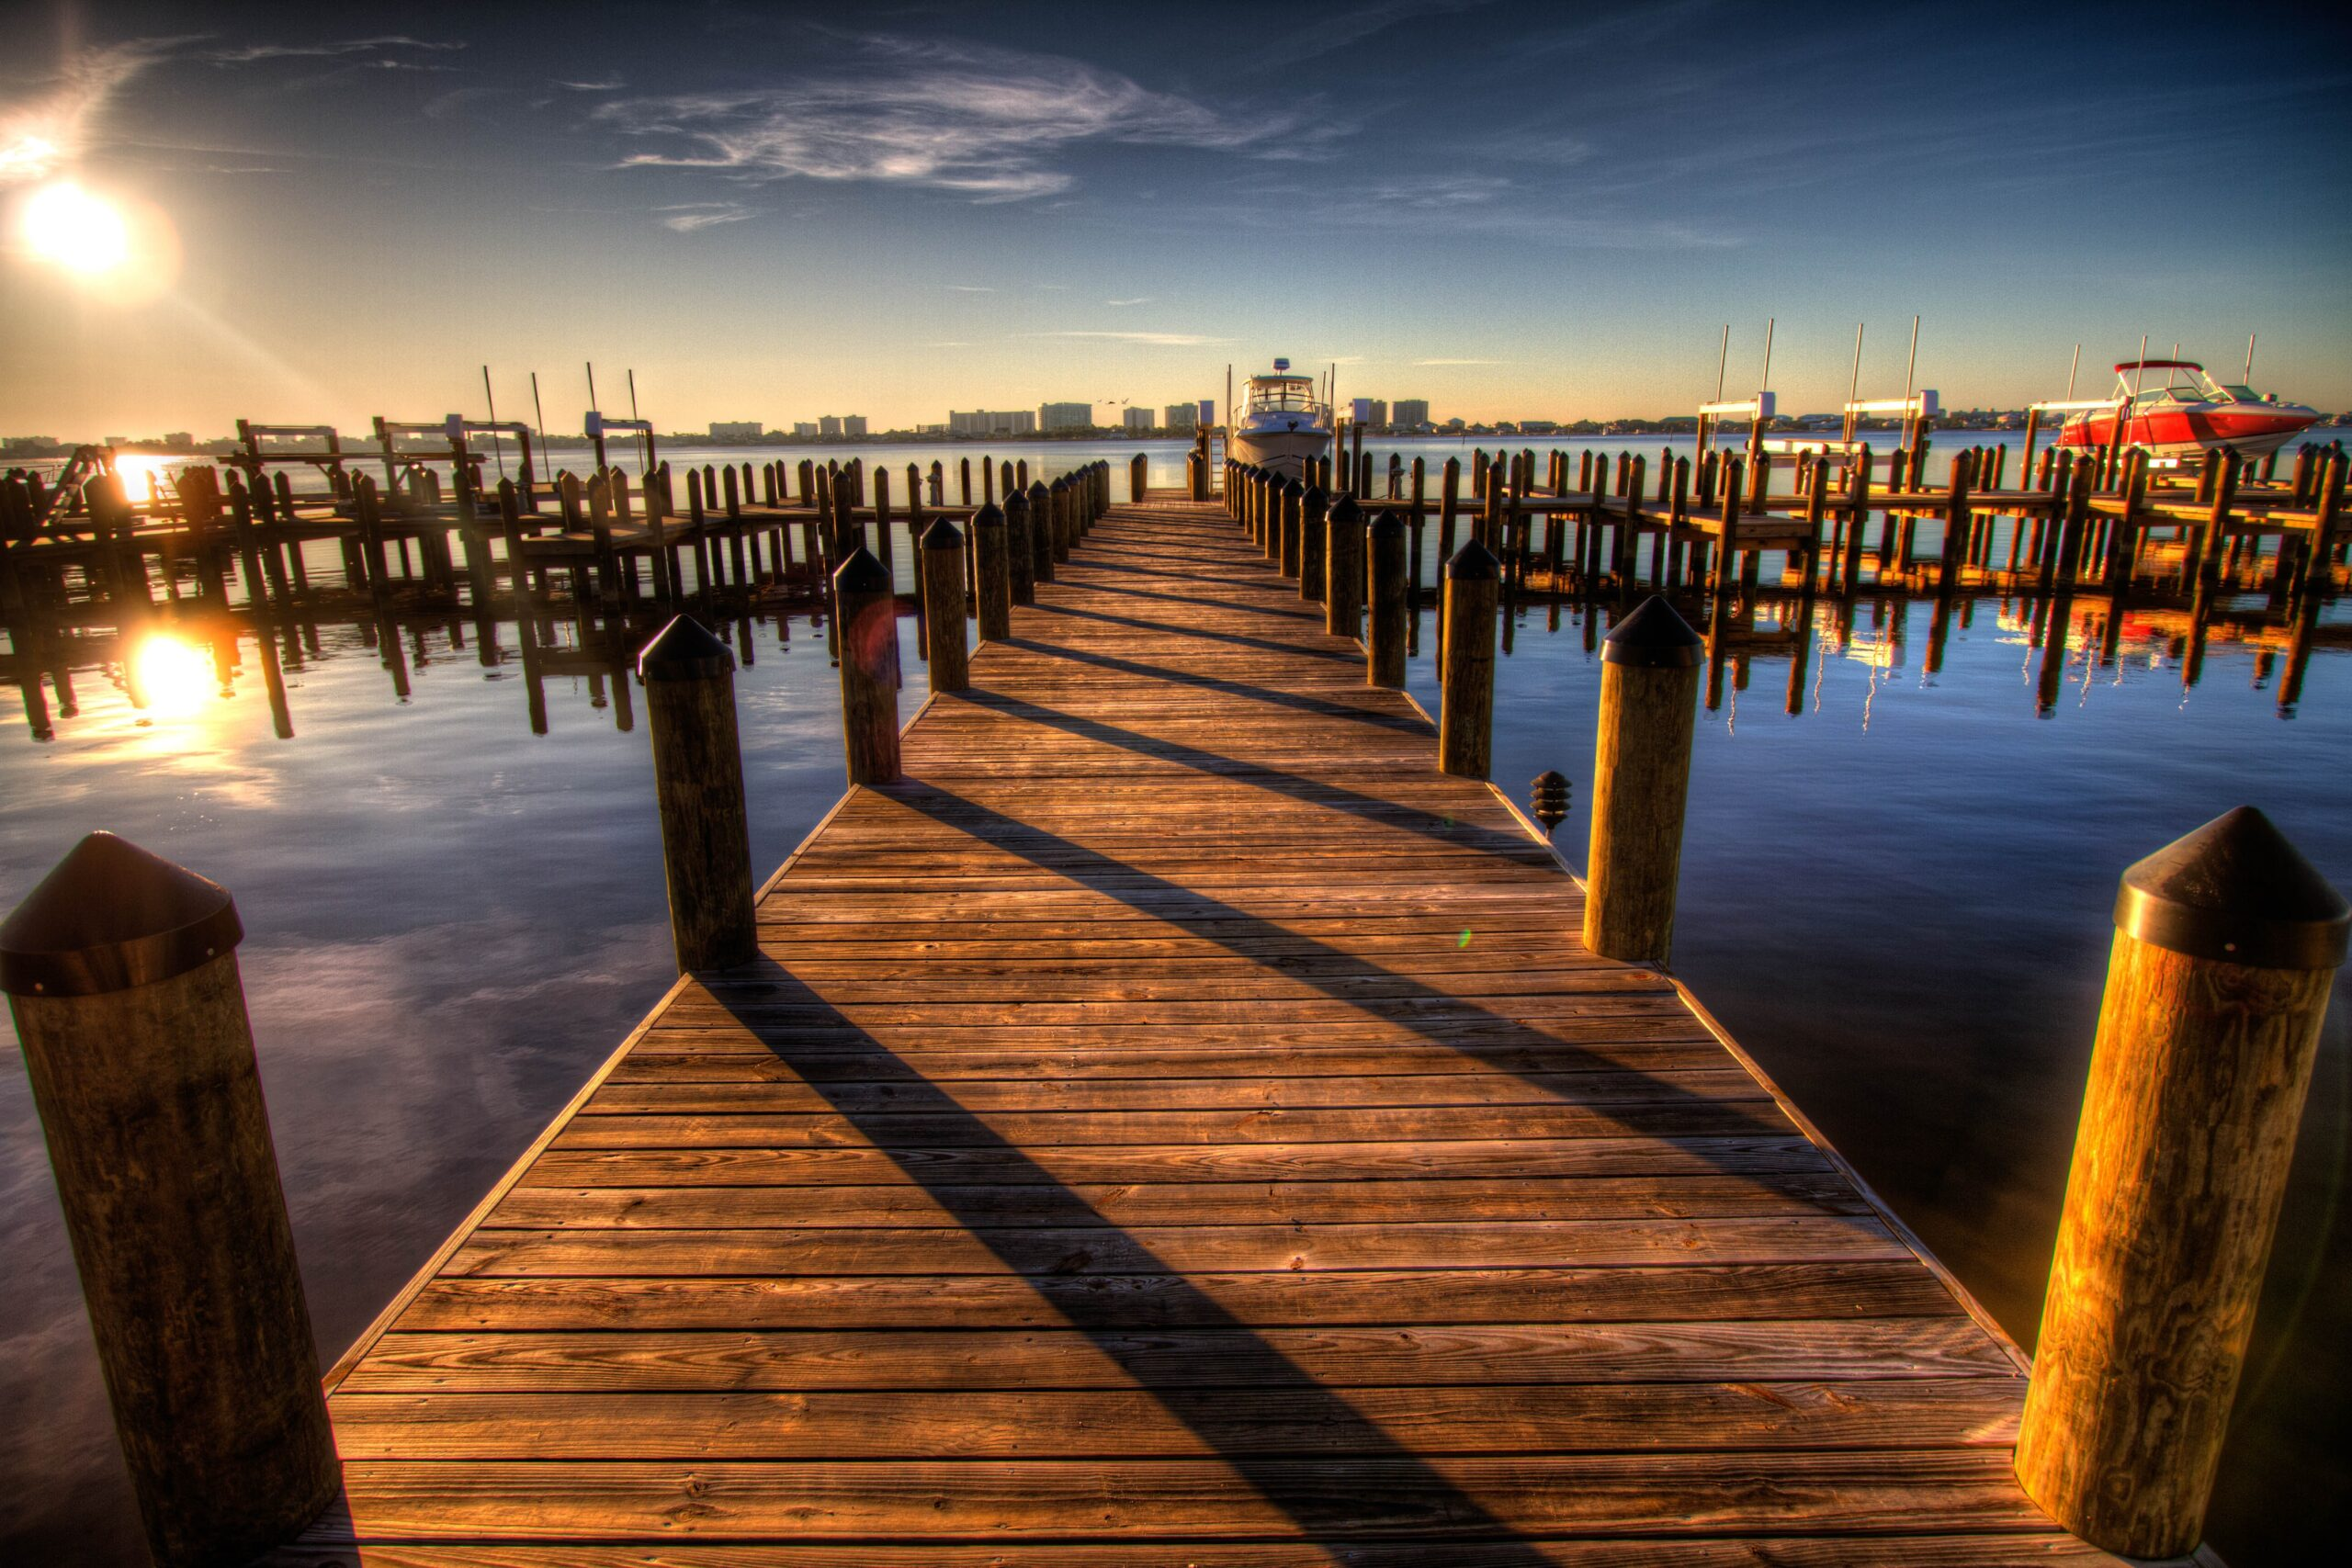 Stock image of pier for National Seafood Council Task Force